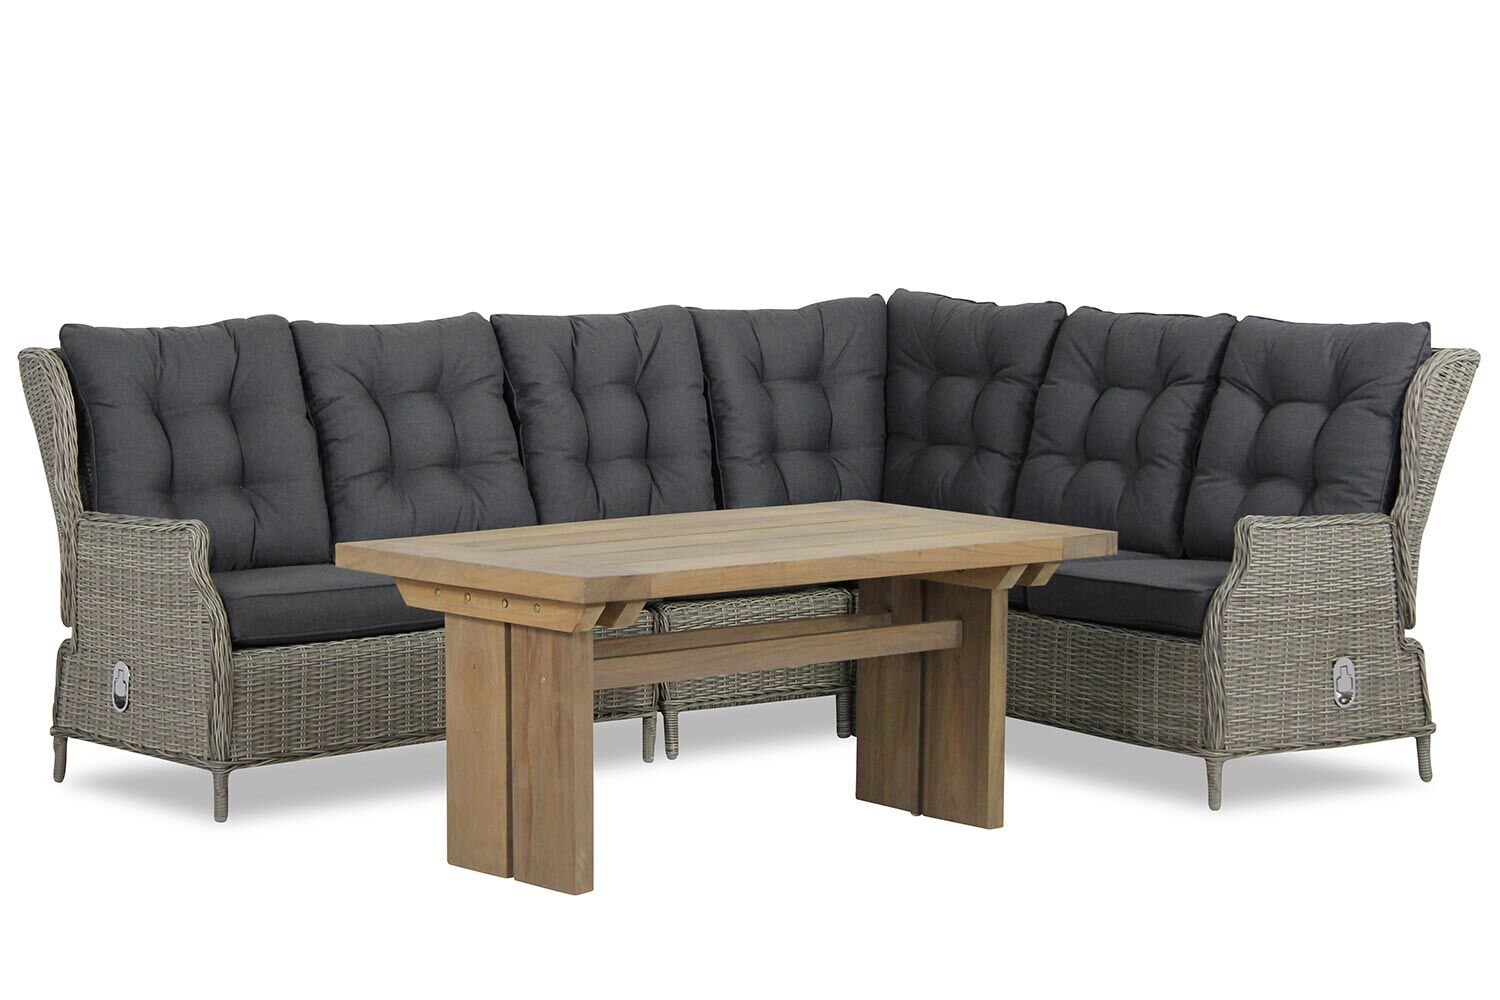 Garden Collections New Castle/Brighton dining loungeset 5-delig